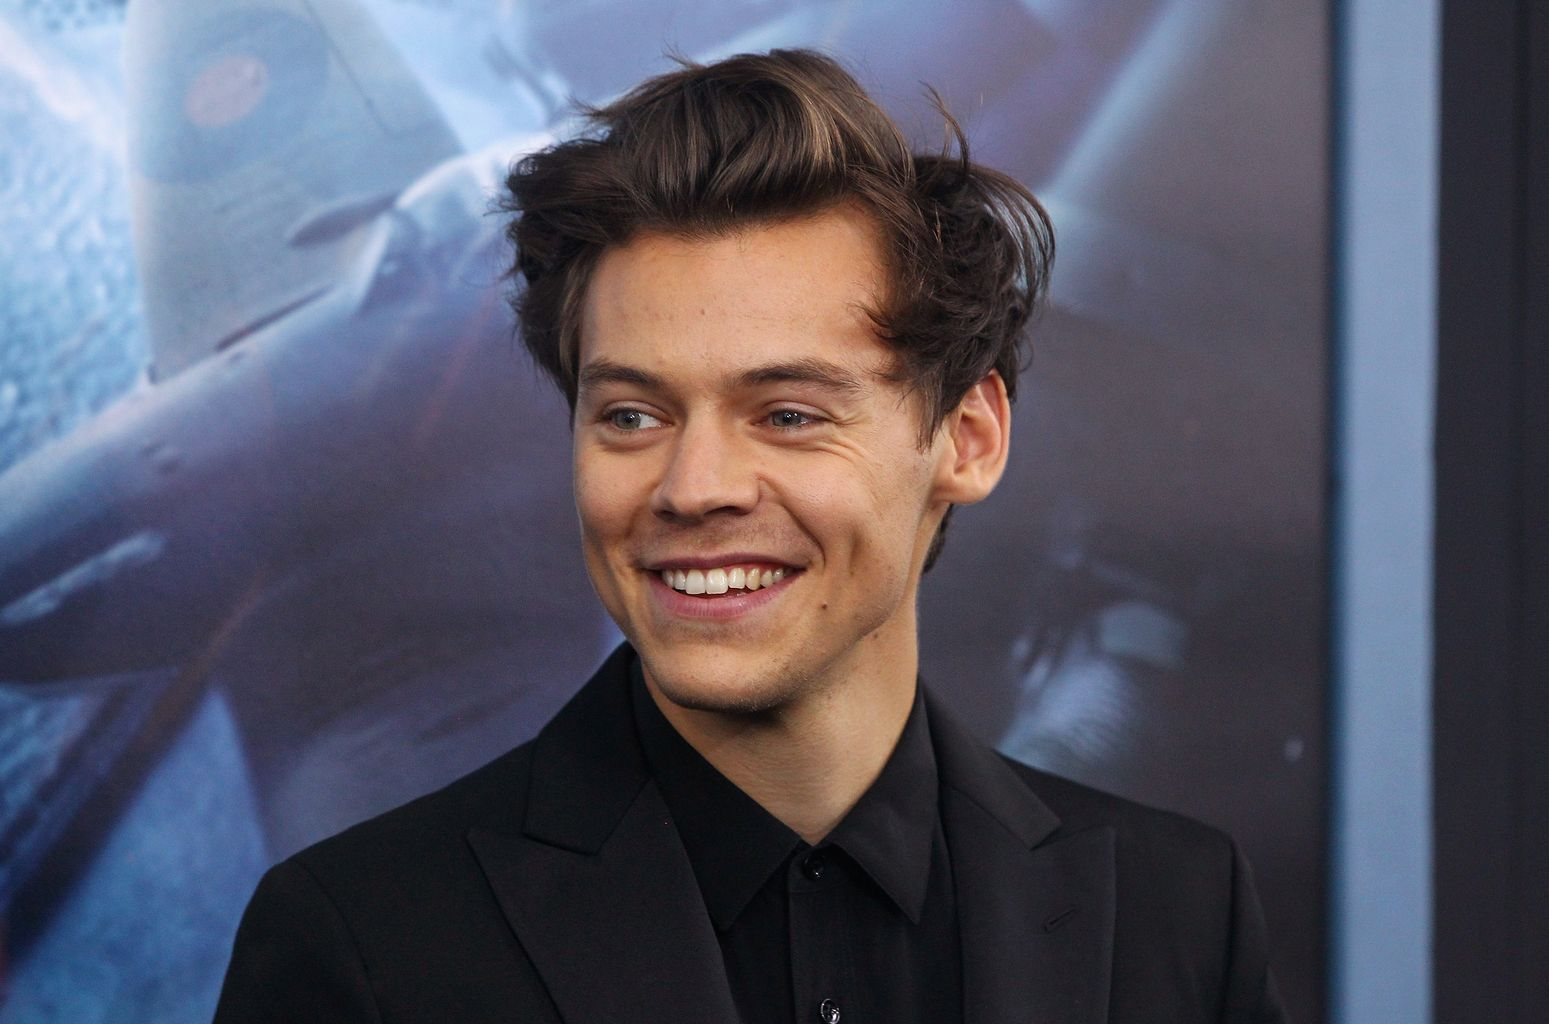 Win it Minute: What fruit is mentioned in the title of Harry Styles recent song?